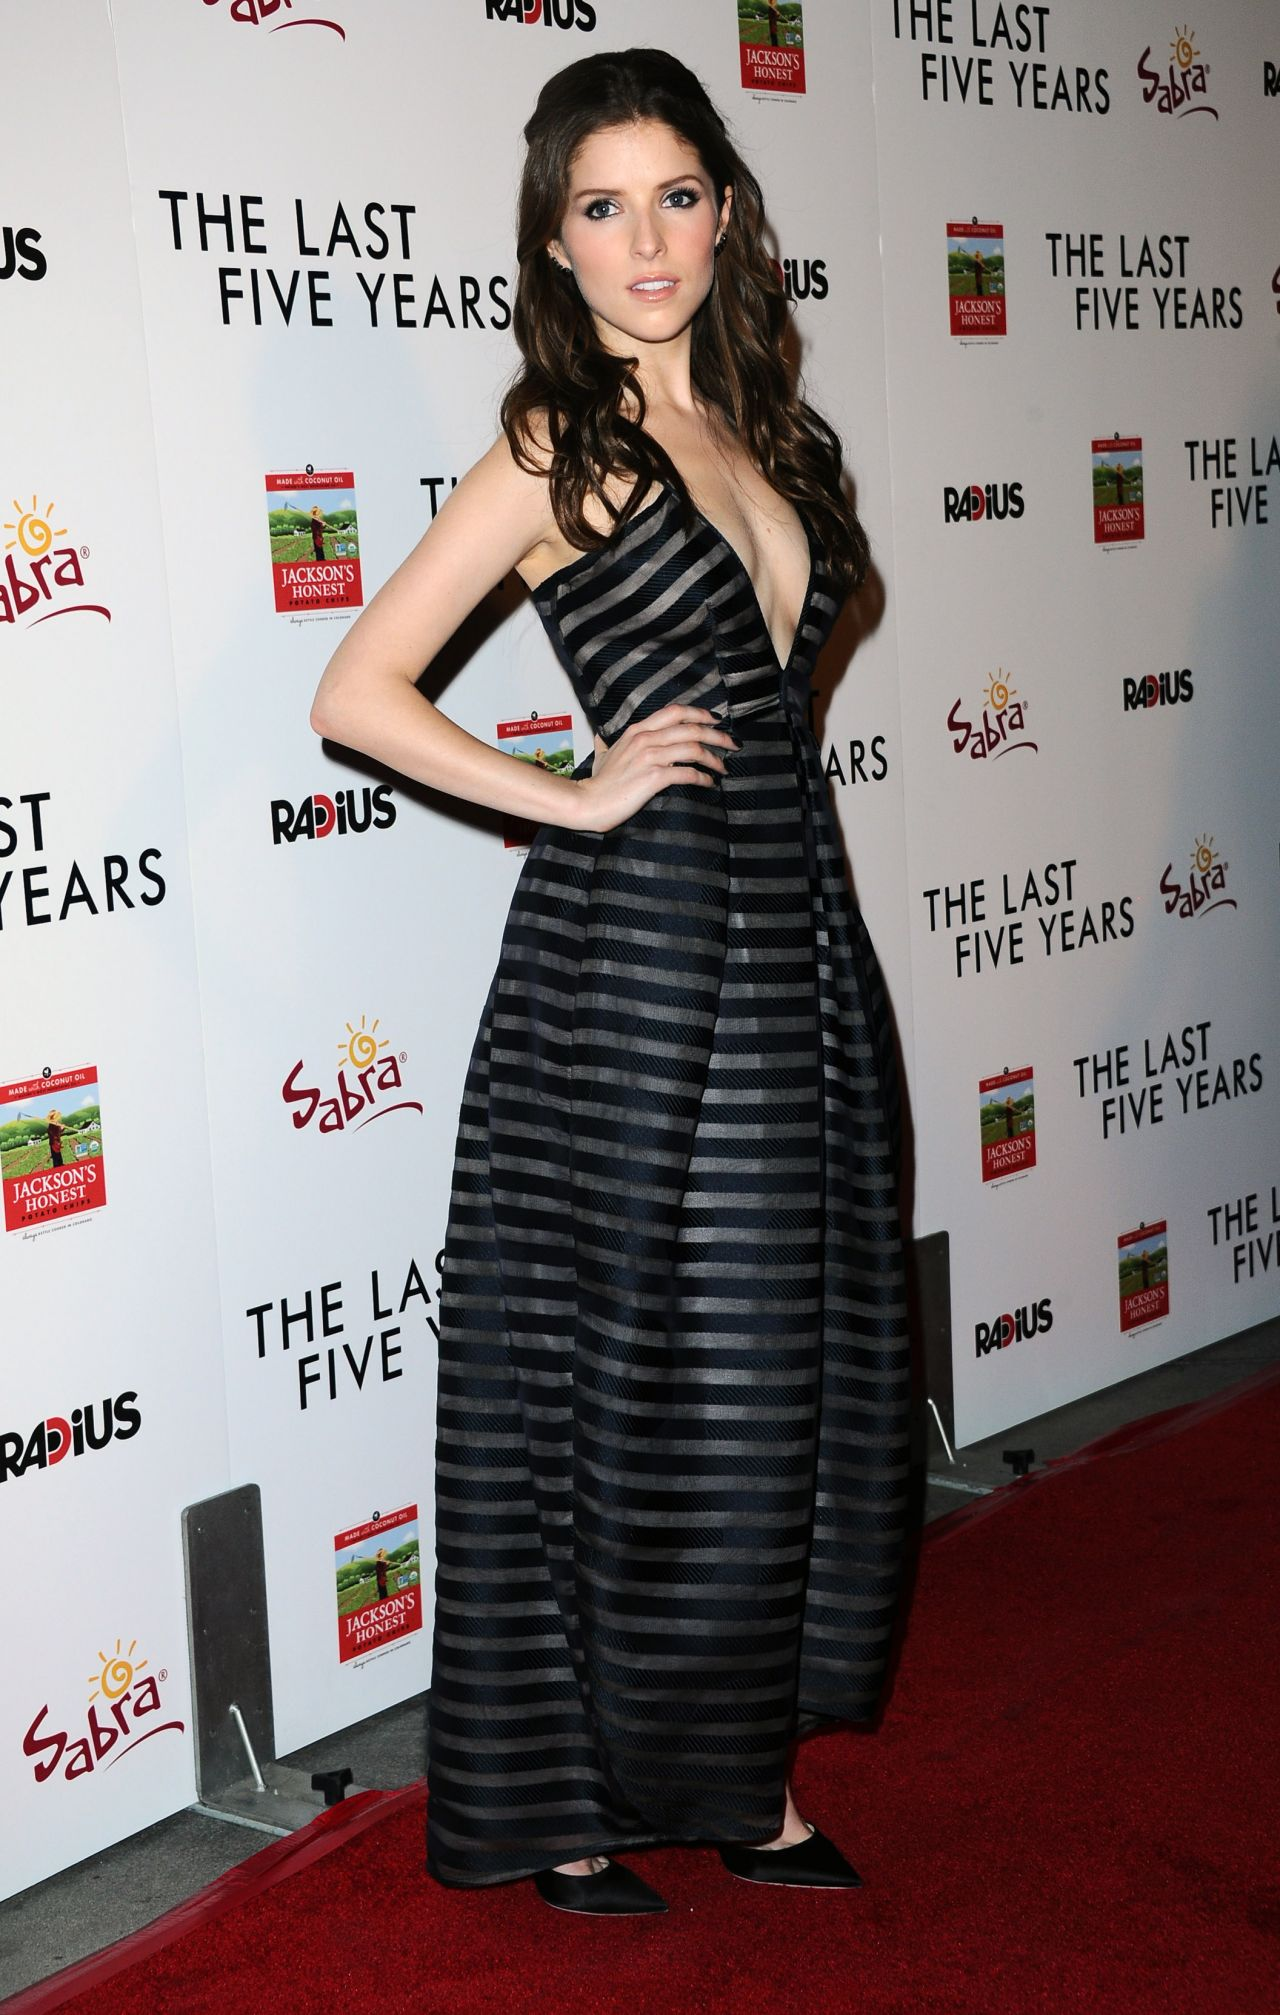 anna-kendrick-the-last-five-years-premiere-in-hollywood_7